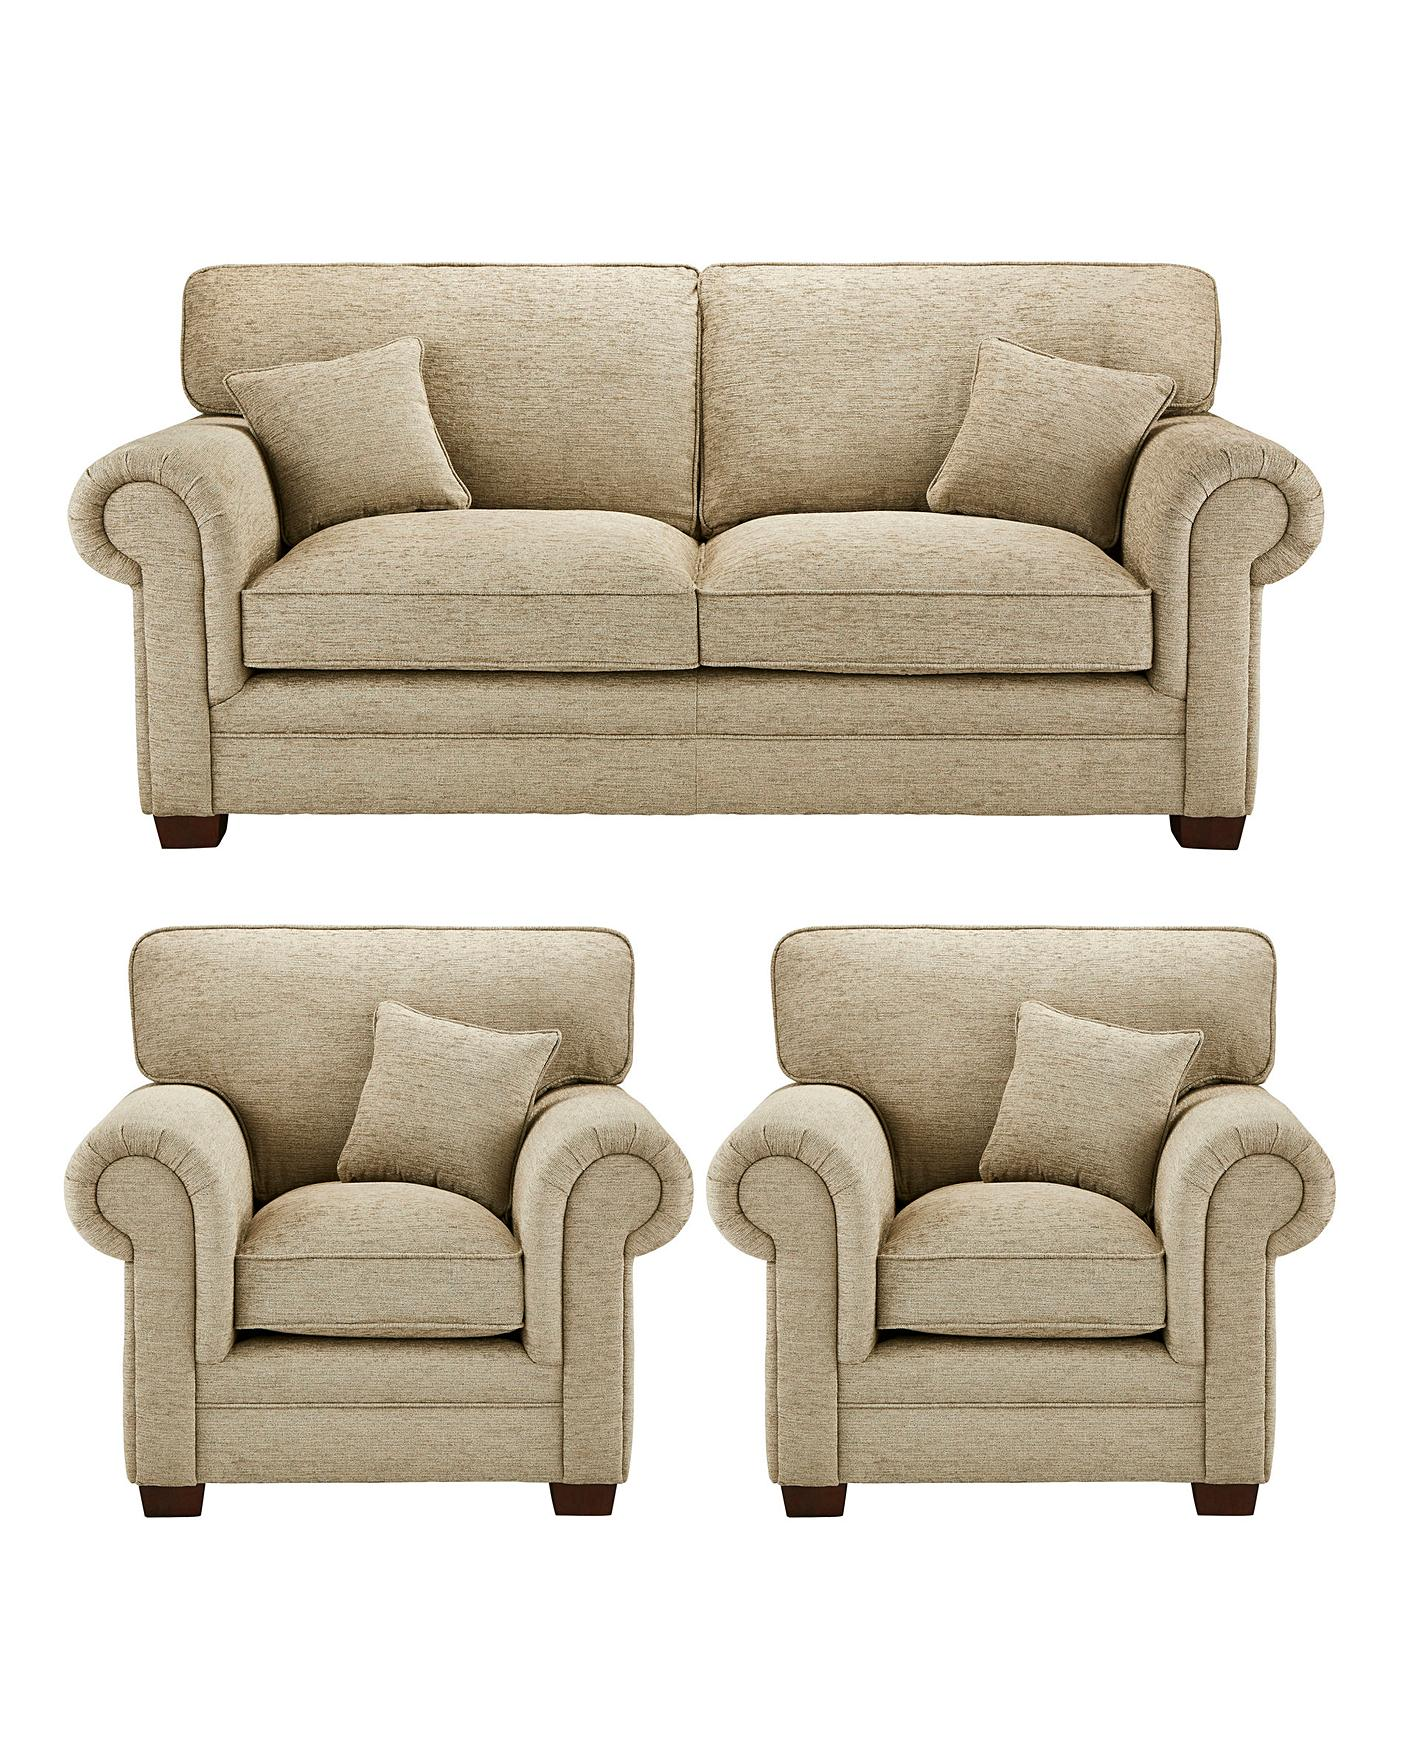 Avery 3 Seater Sofa Plus 2 Chairs J D